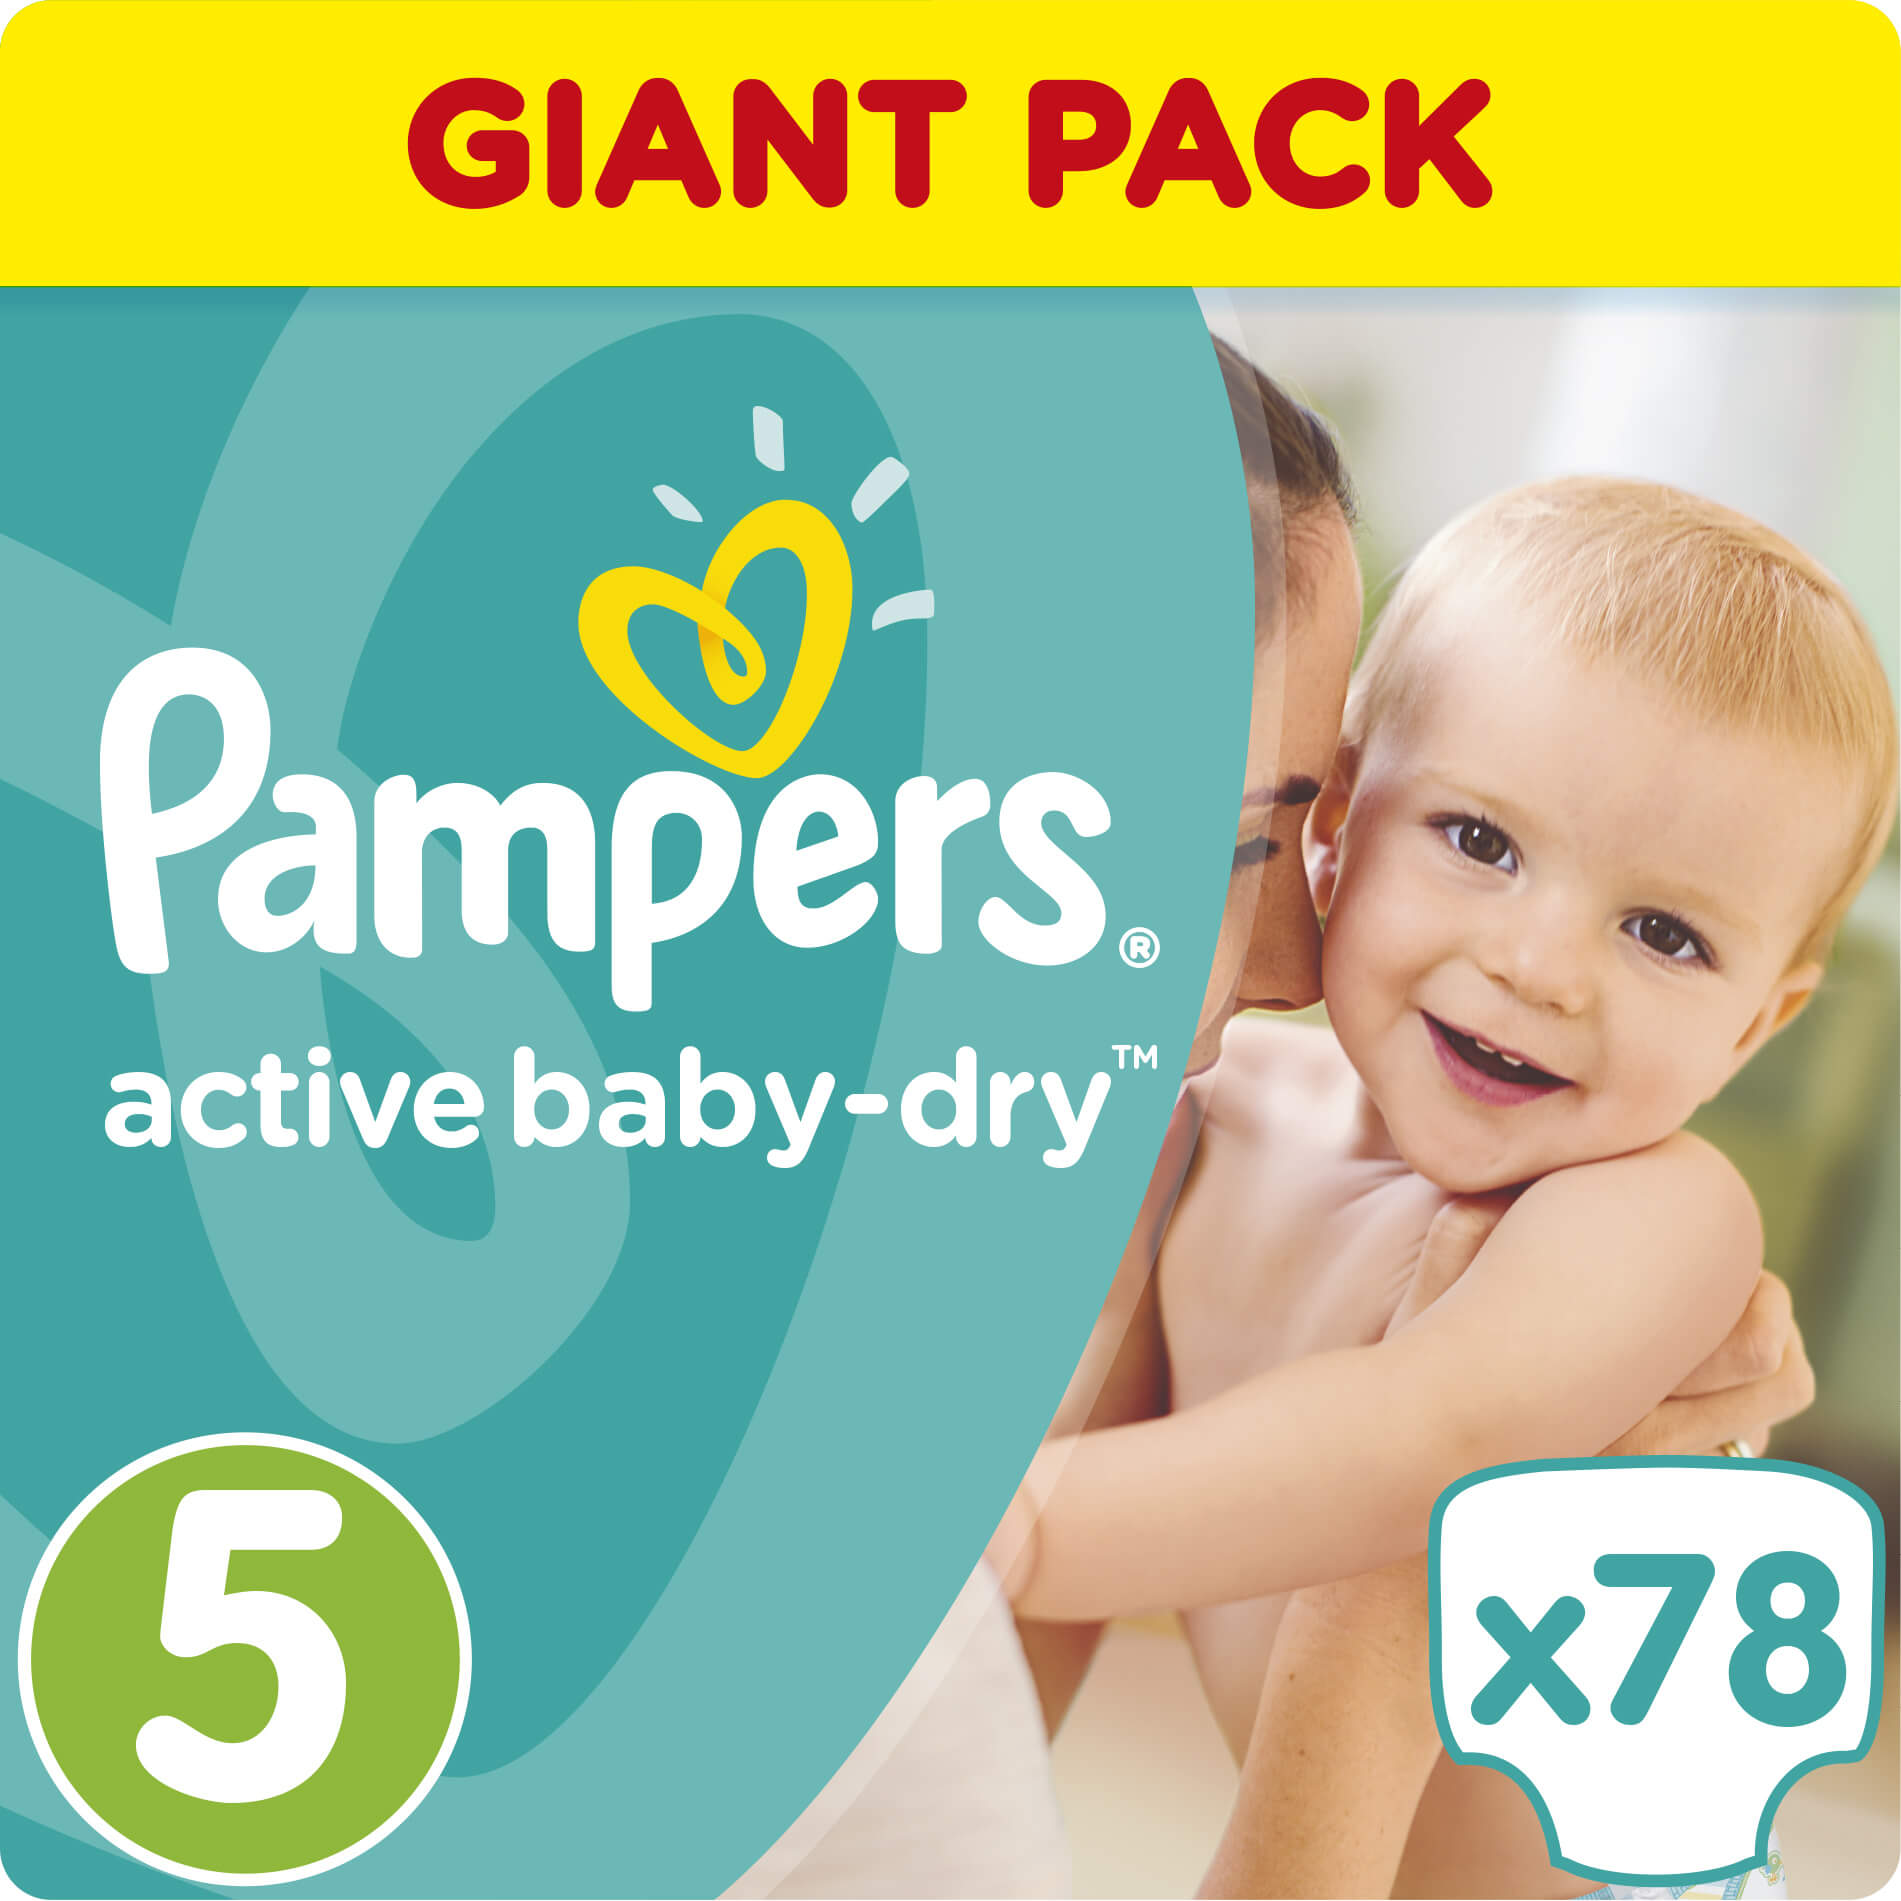 Pampers Active Baby Dry Giant Pack No5 (11-18kg) 78 πάνες μητέρα παιδί   περιποίηση για το μωρό   πάνες για το μωρό